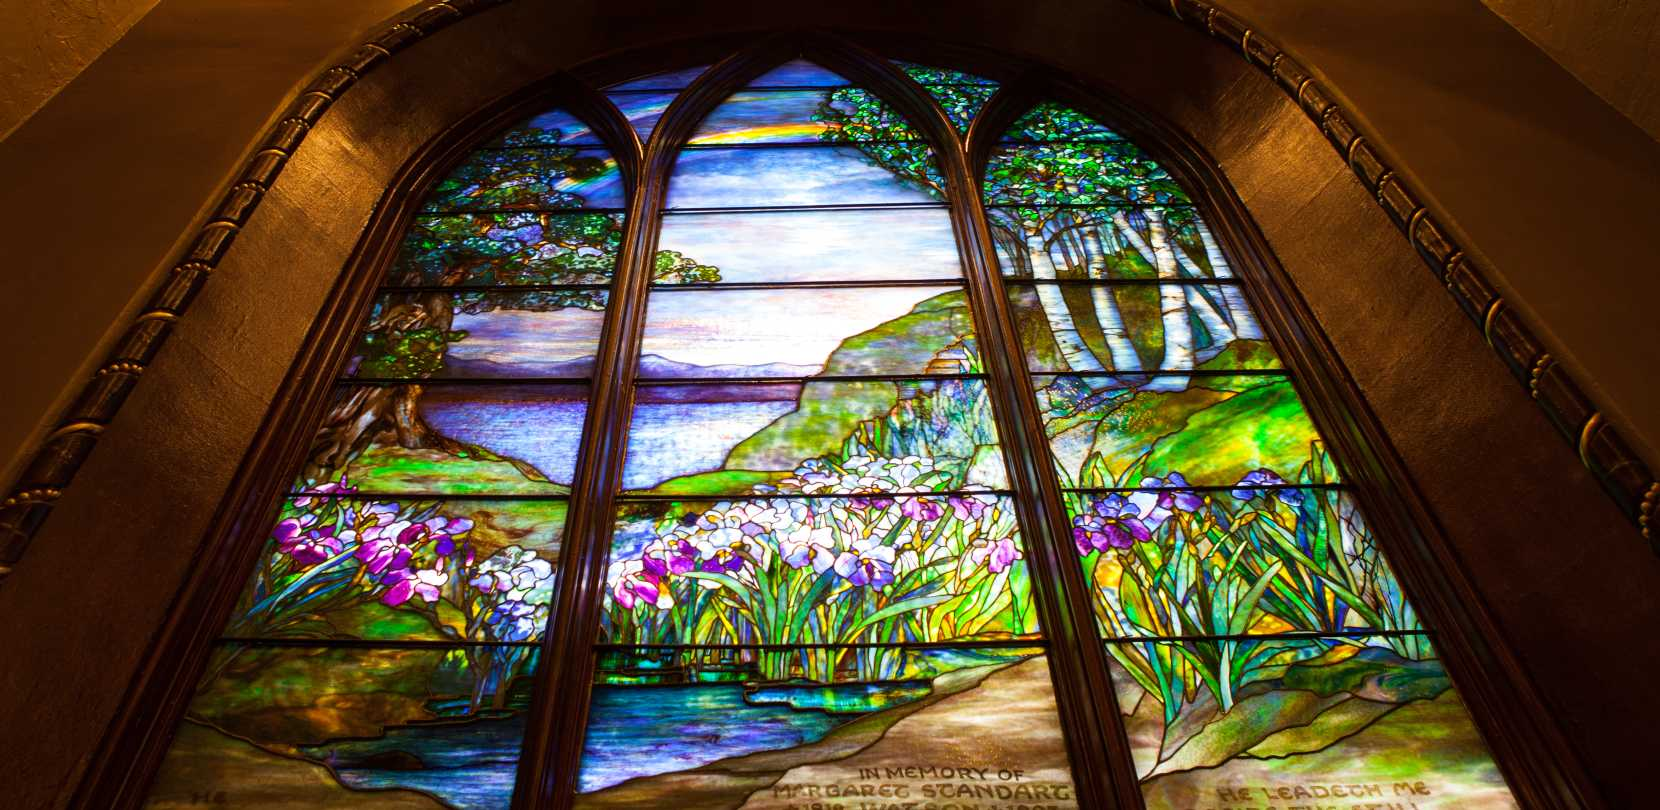 New york cayuga county - Stained Glass Window